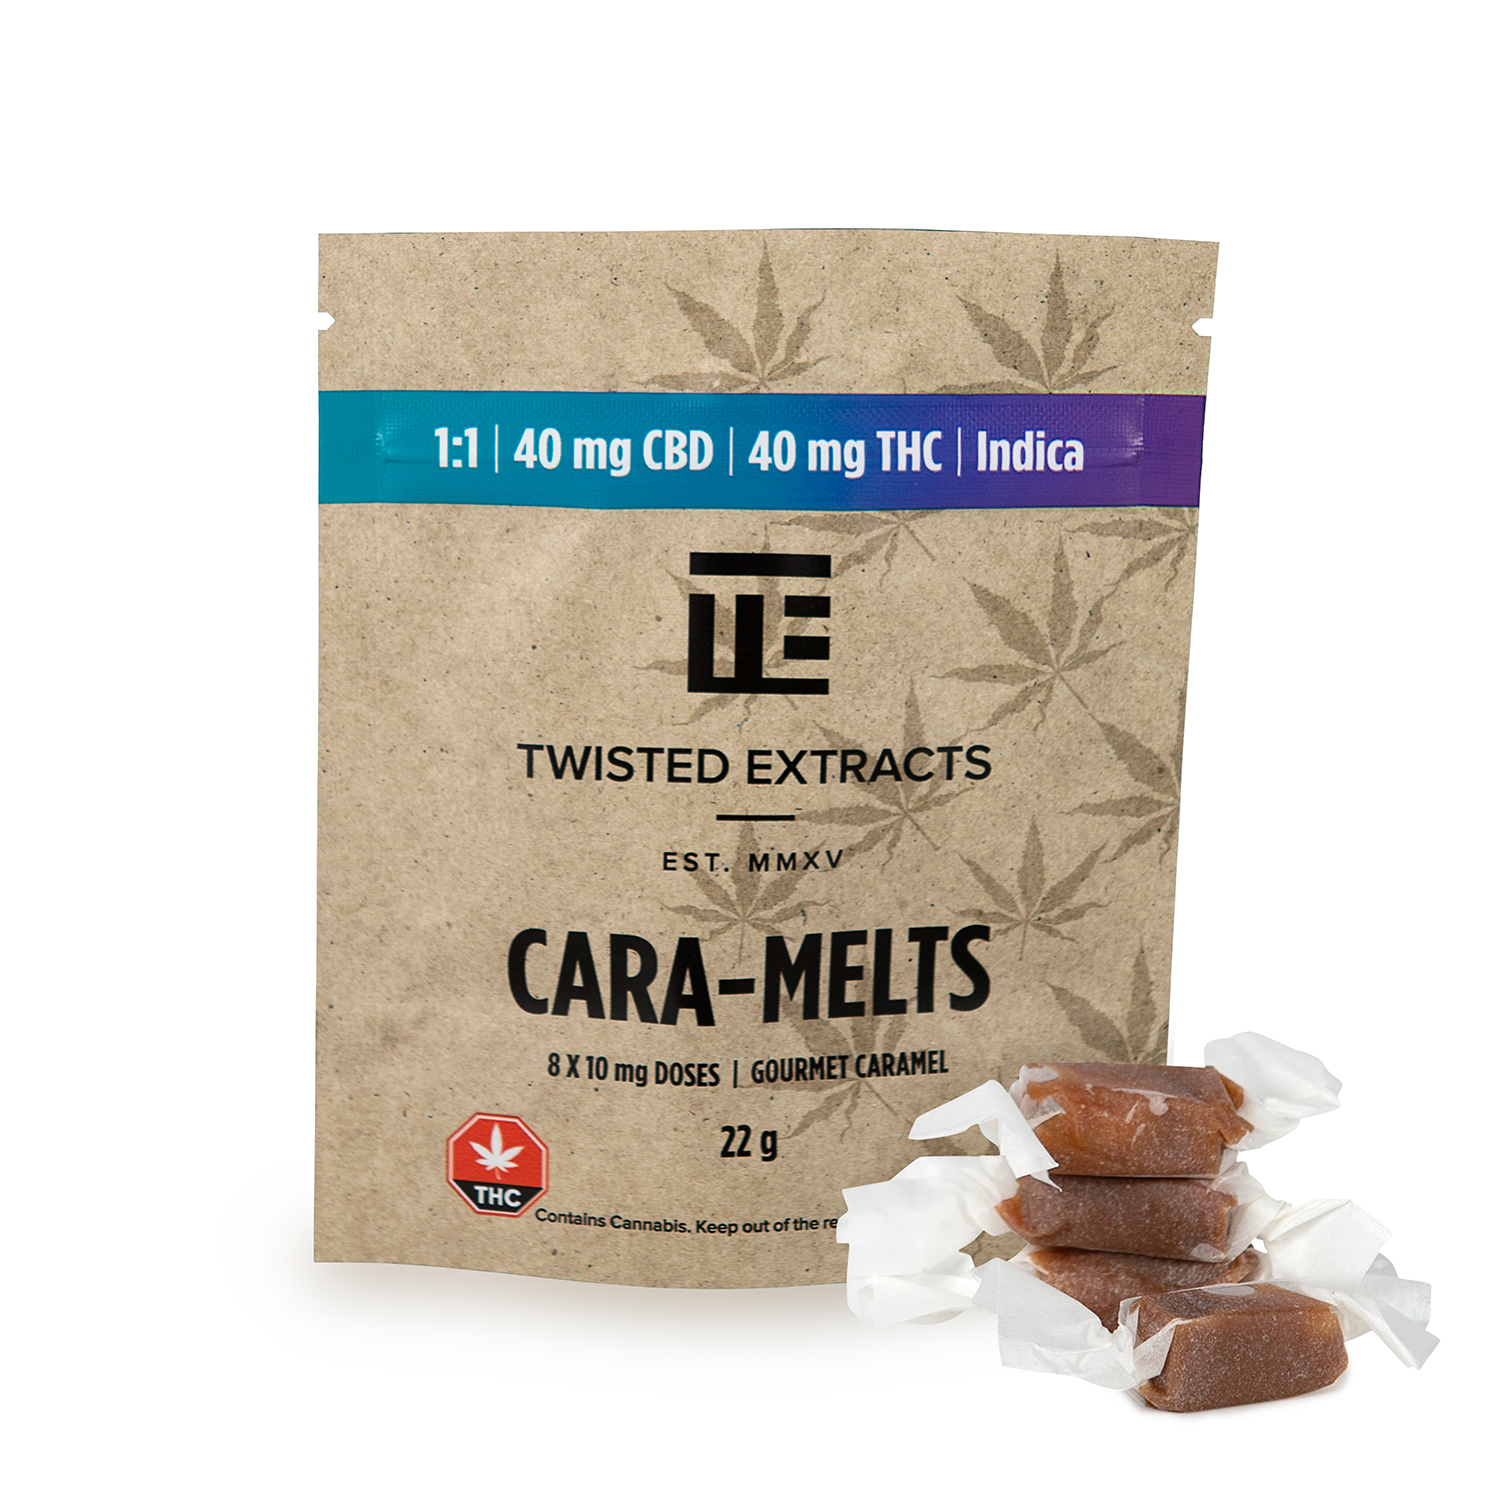 1 1 Indica Caramel Candies Twisted Extract Edibles Medicinal Express